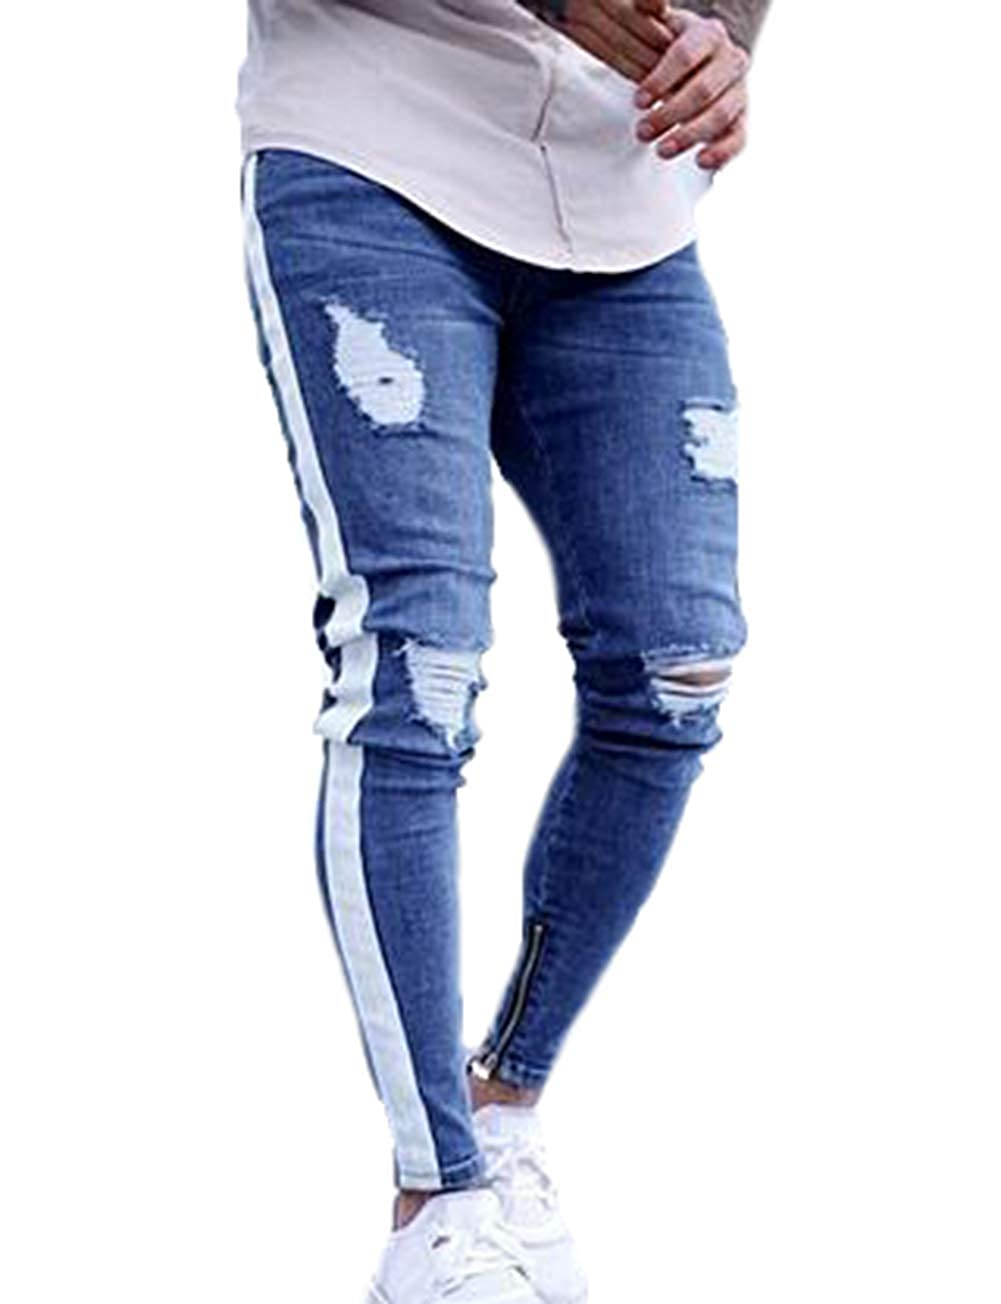 ed80497d50ed XARAZA Men's Distressed Ripped Slim Fit Jeans Skinny Denim Moto Biker  Pencil Pants at Amazon Men's Clothing store: